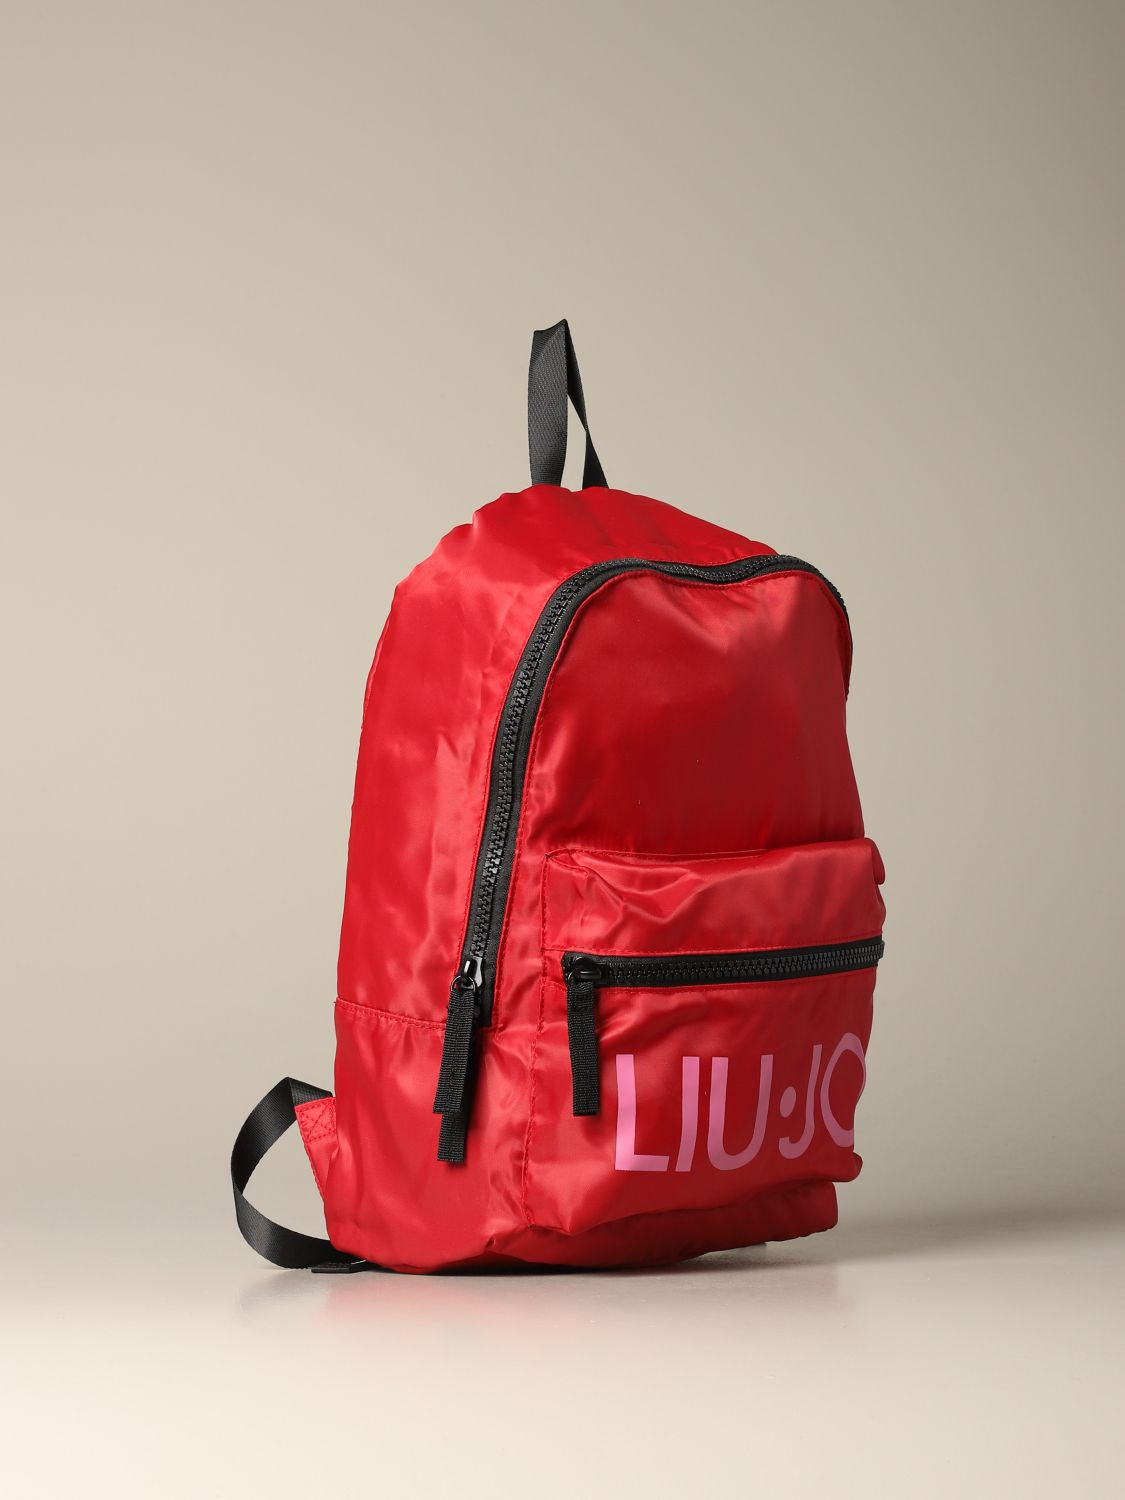 Liu Jo backpack in patterned nylon red 3